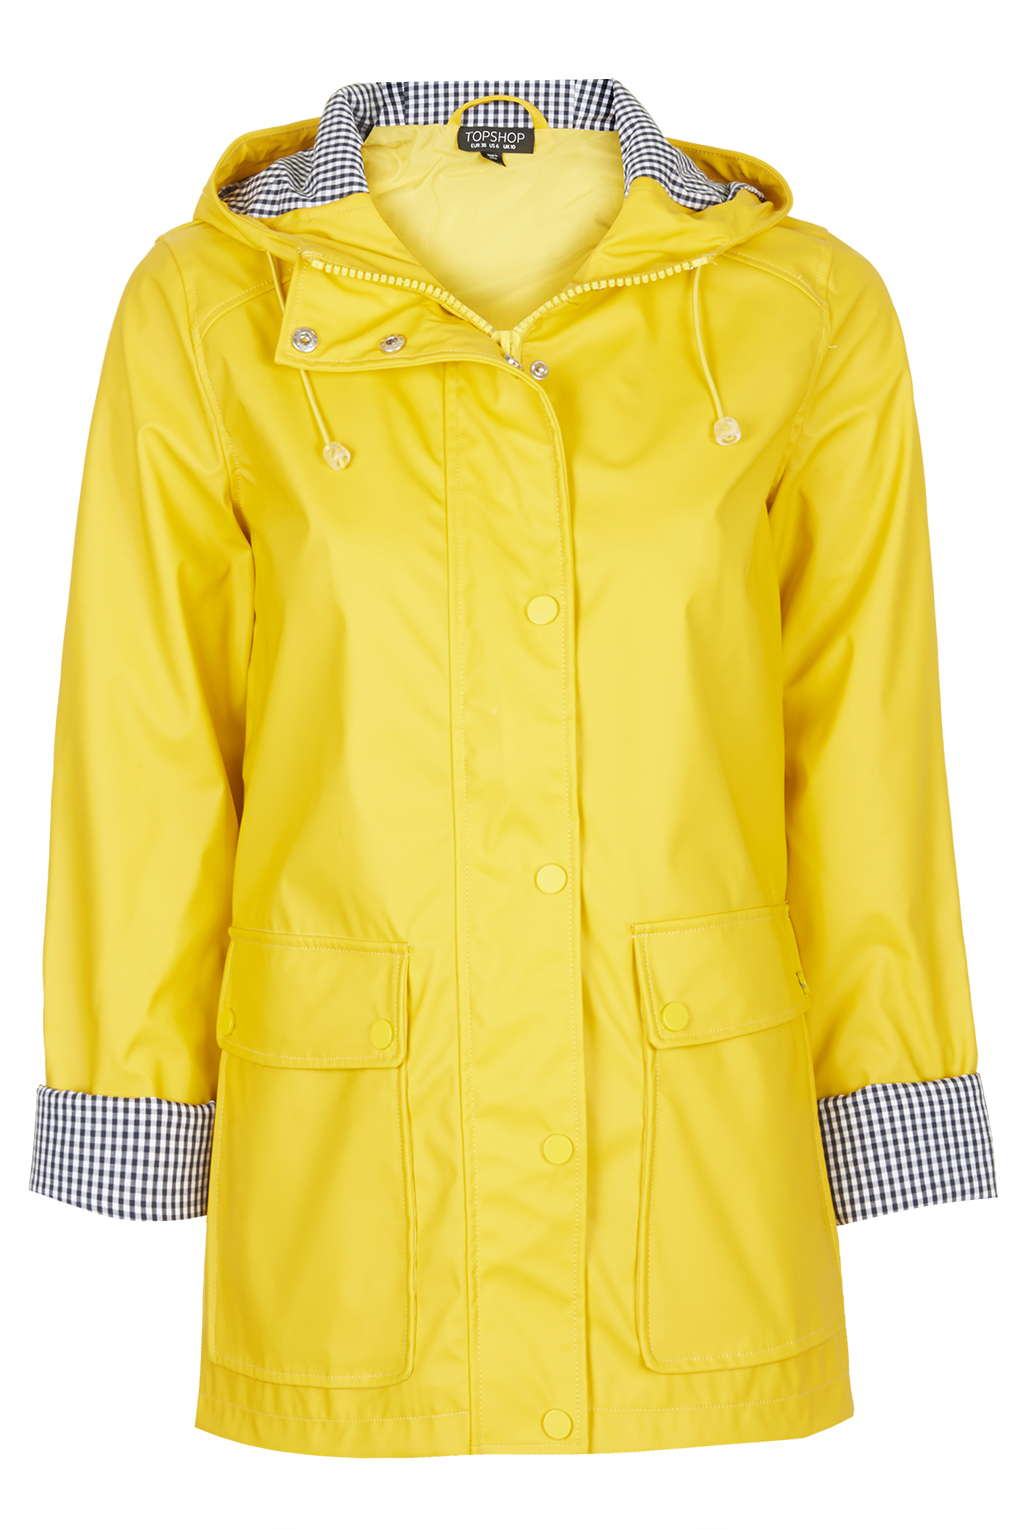 Yellow Rain Jacket - Coat Nj